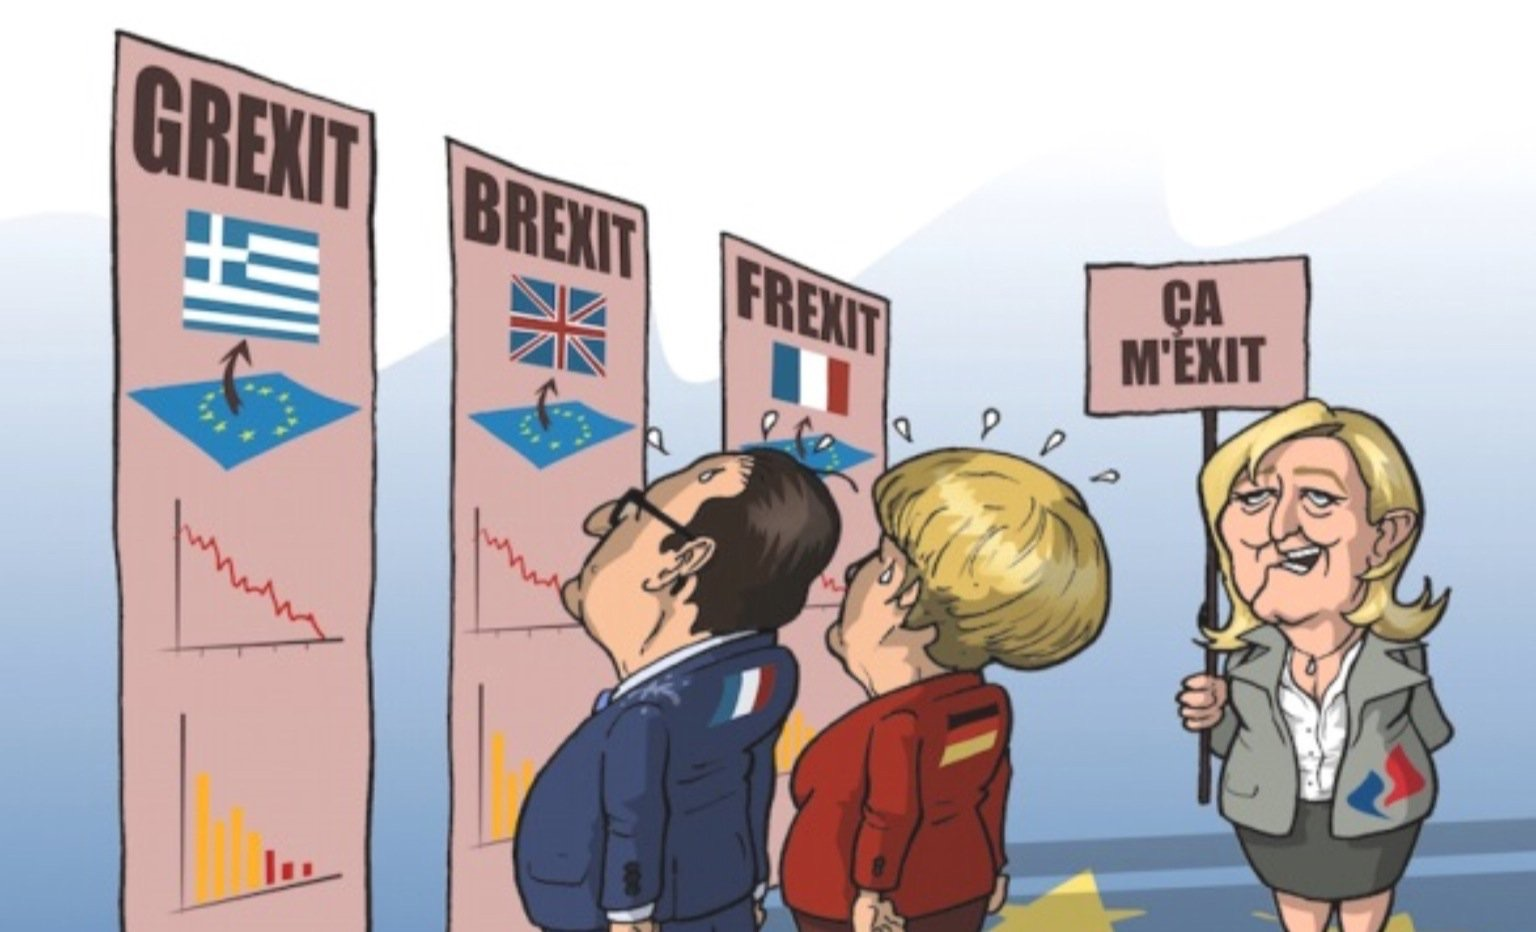 BREXIT : LA PANIQUE DE L'ESTABLISHMENT (par l'Imprécateur)